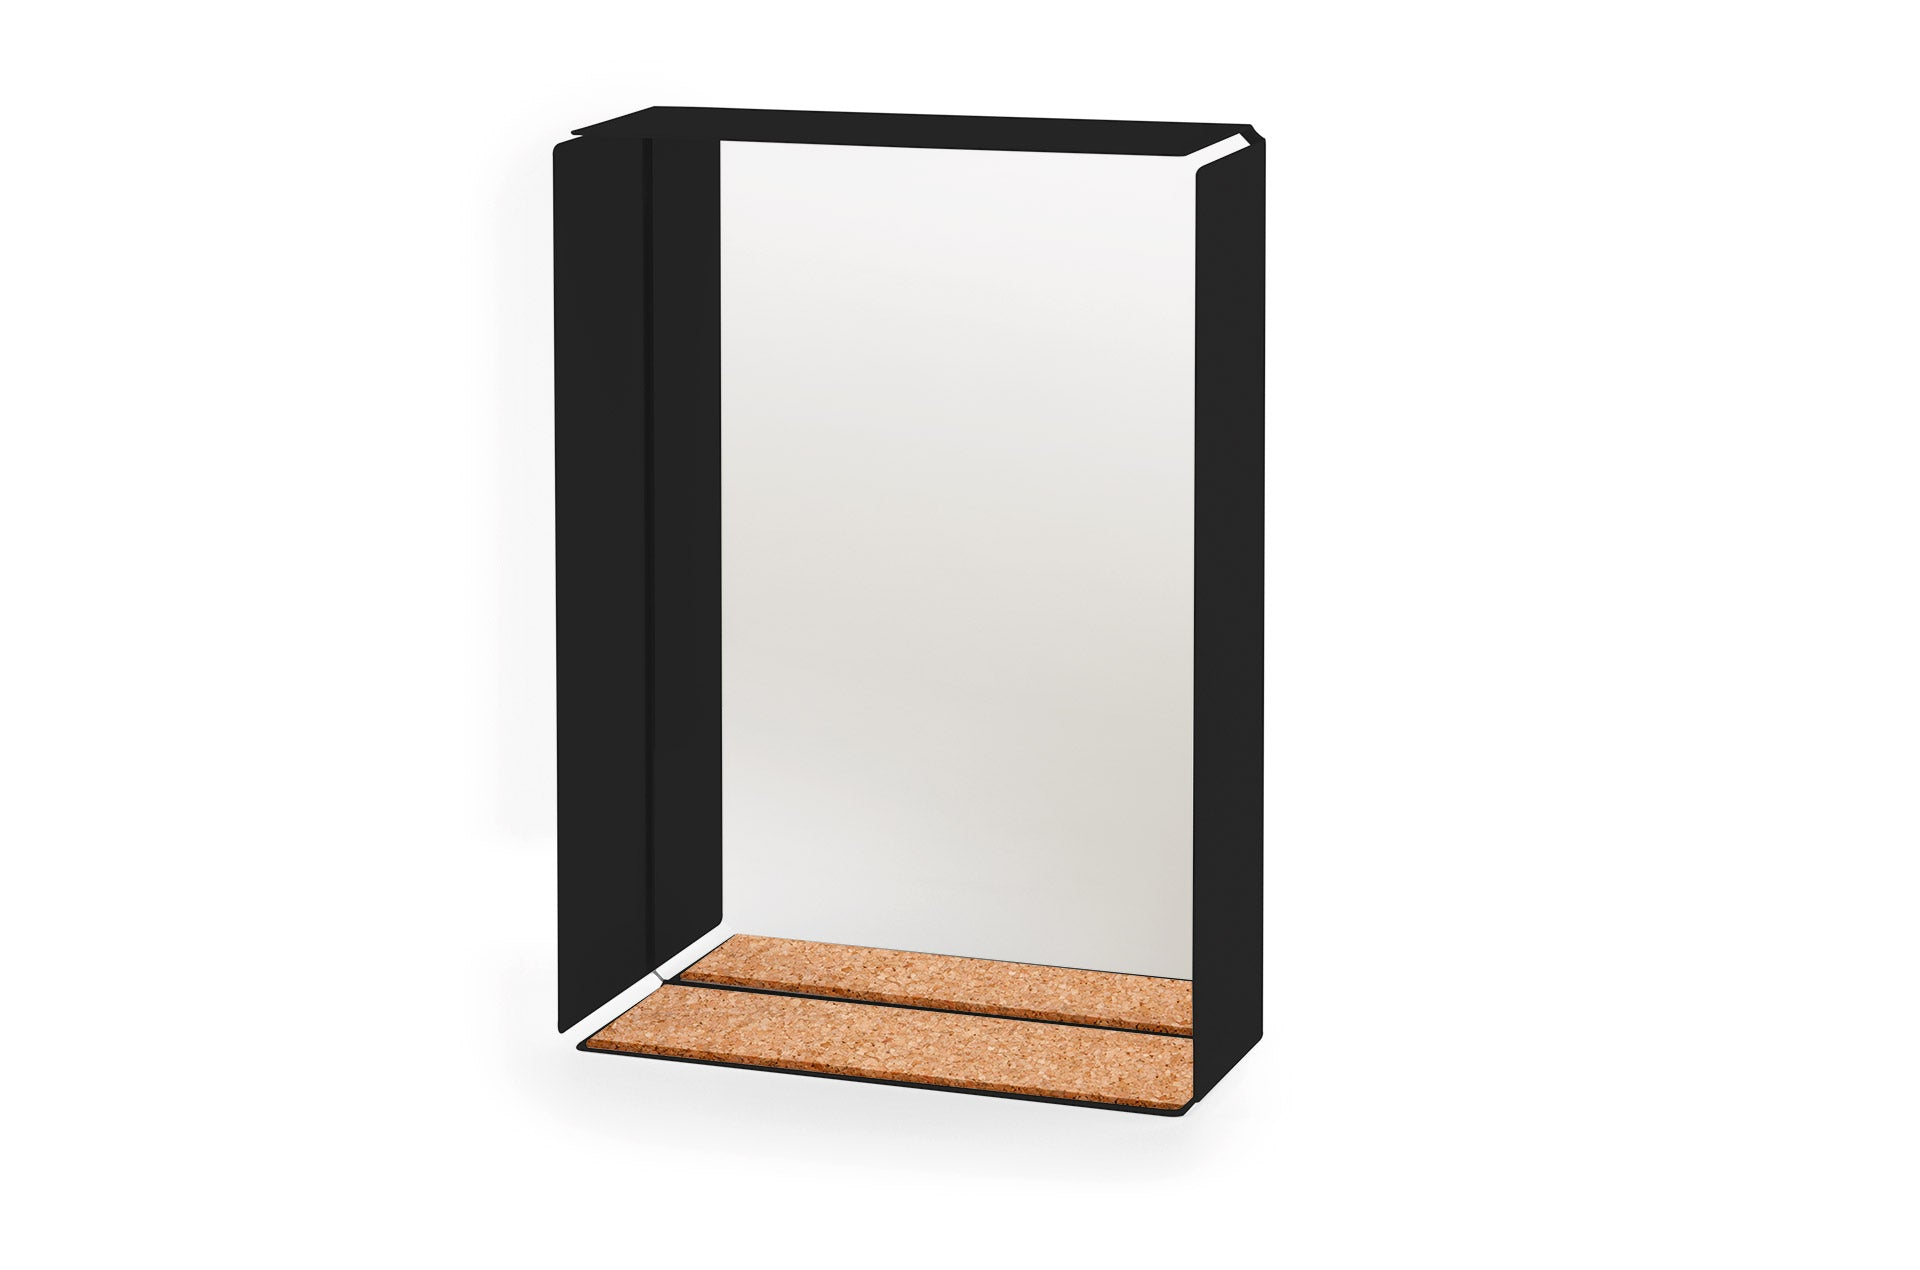 Etagère murale Mirror Box Noir-liège-PARIDEO design durable